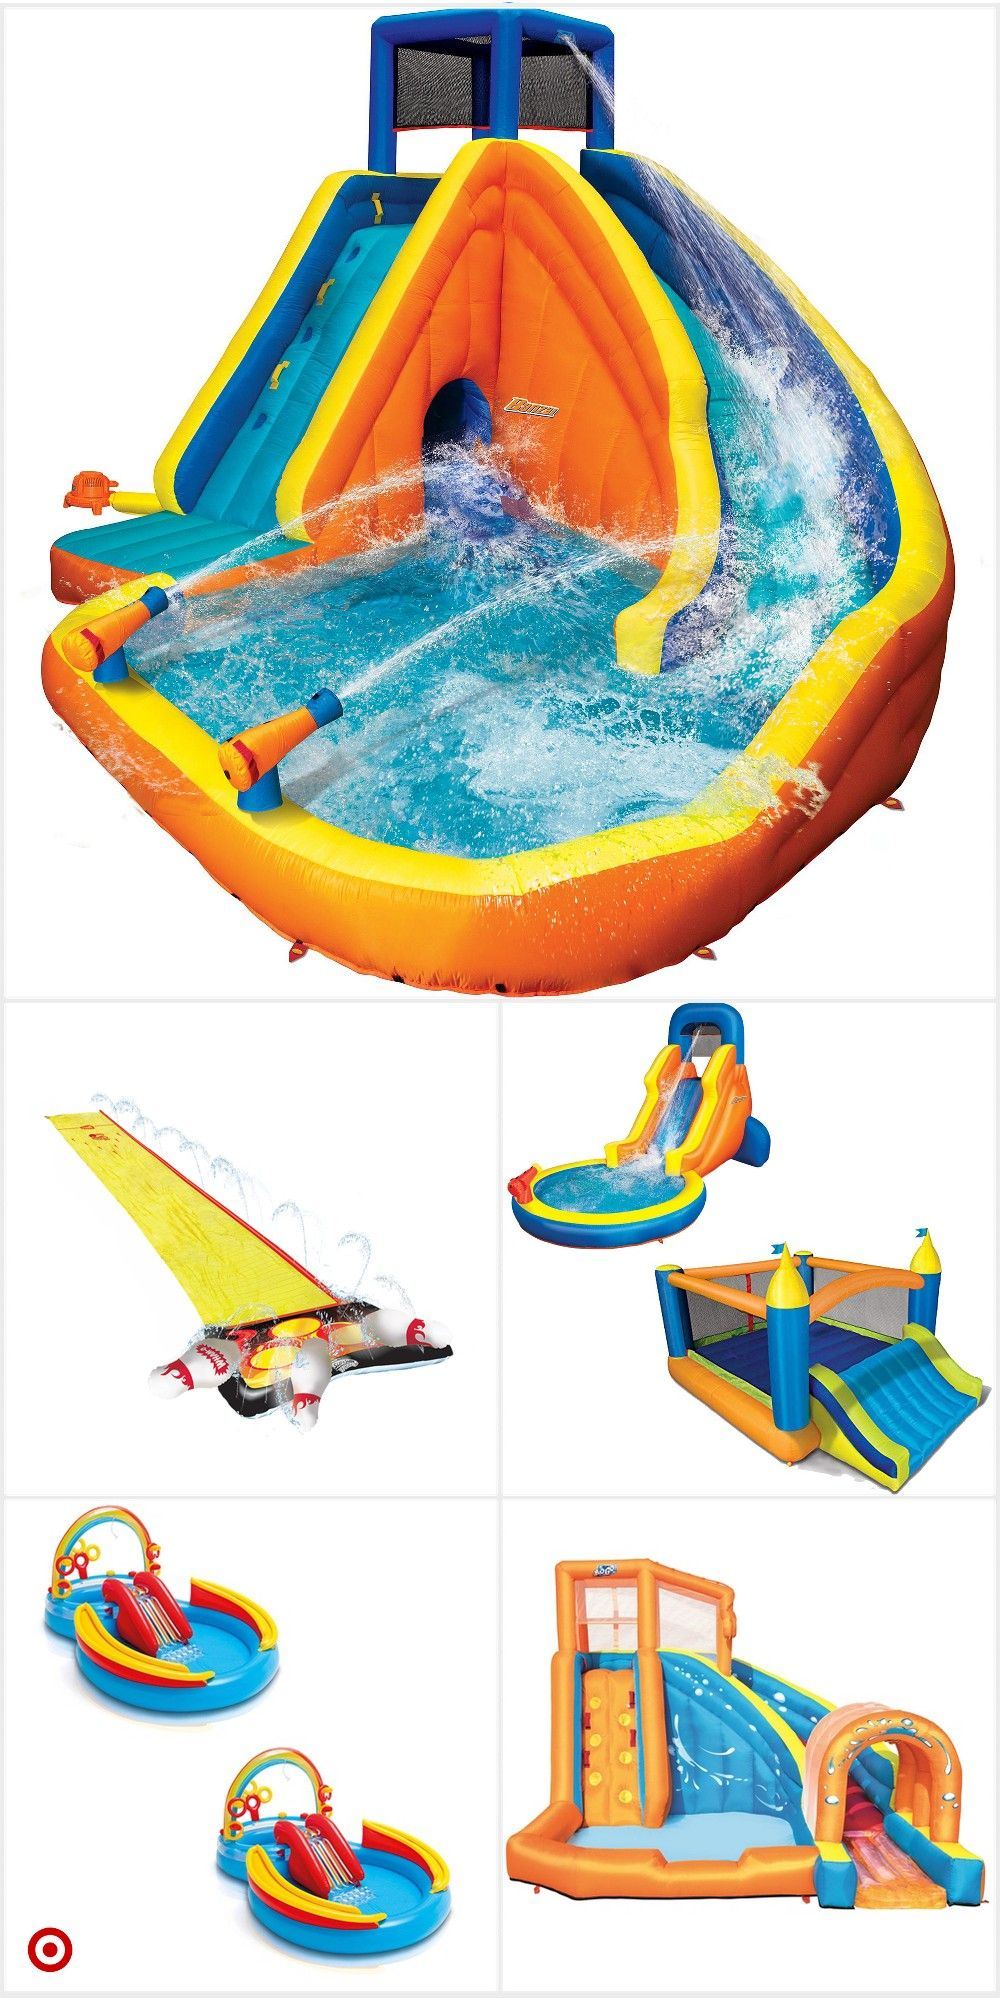 Shop Target For Inflatable Slides You Will Love At Great Low Prices Free Shipping On Orders Of 35 Or Free Fun Sleepover Ideas Cool Pool Floats Backyard Fun